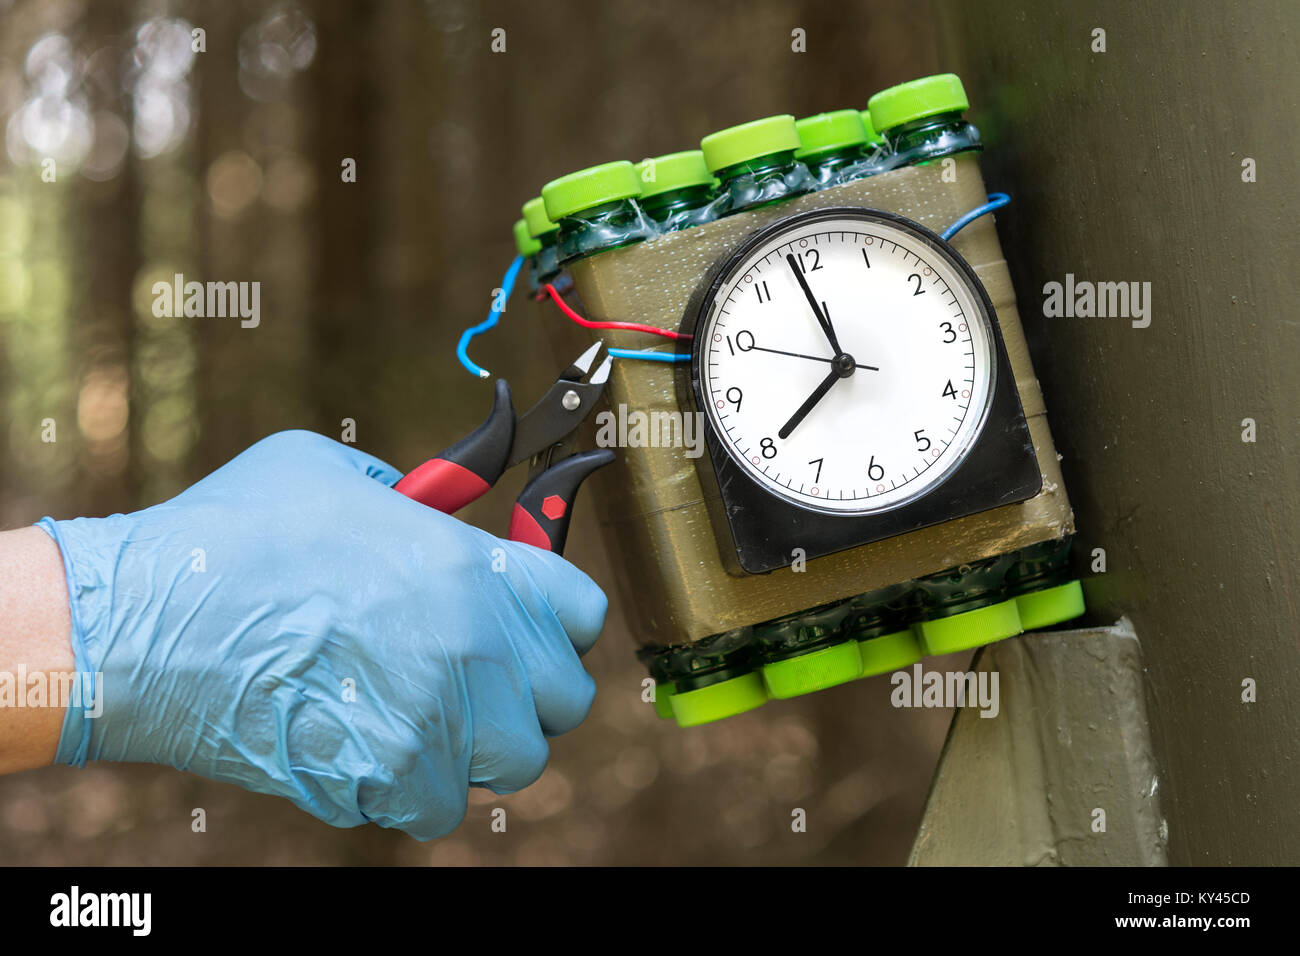 Deactivation of time bomb. Disposal of dangerous timebomb placed at a metal construction. - Stock Image